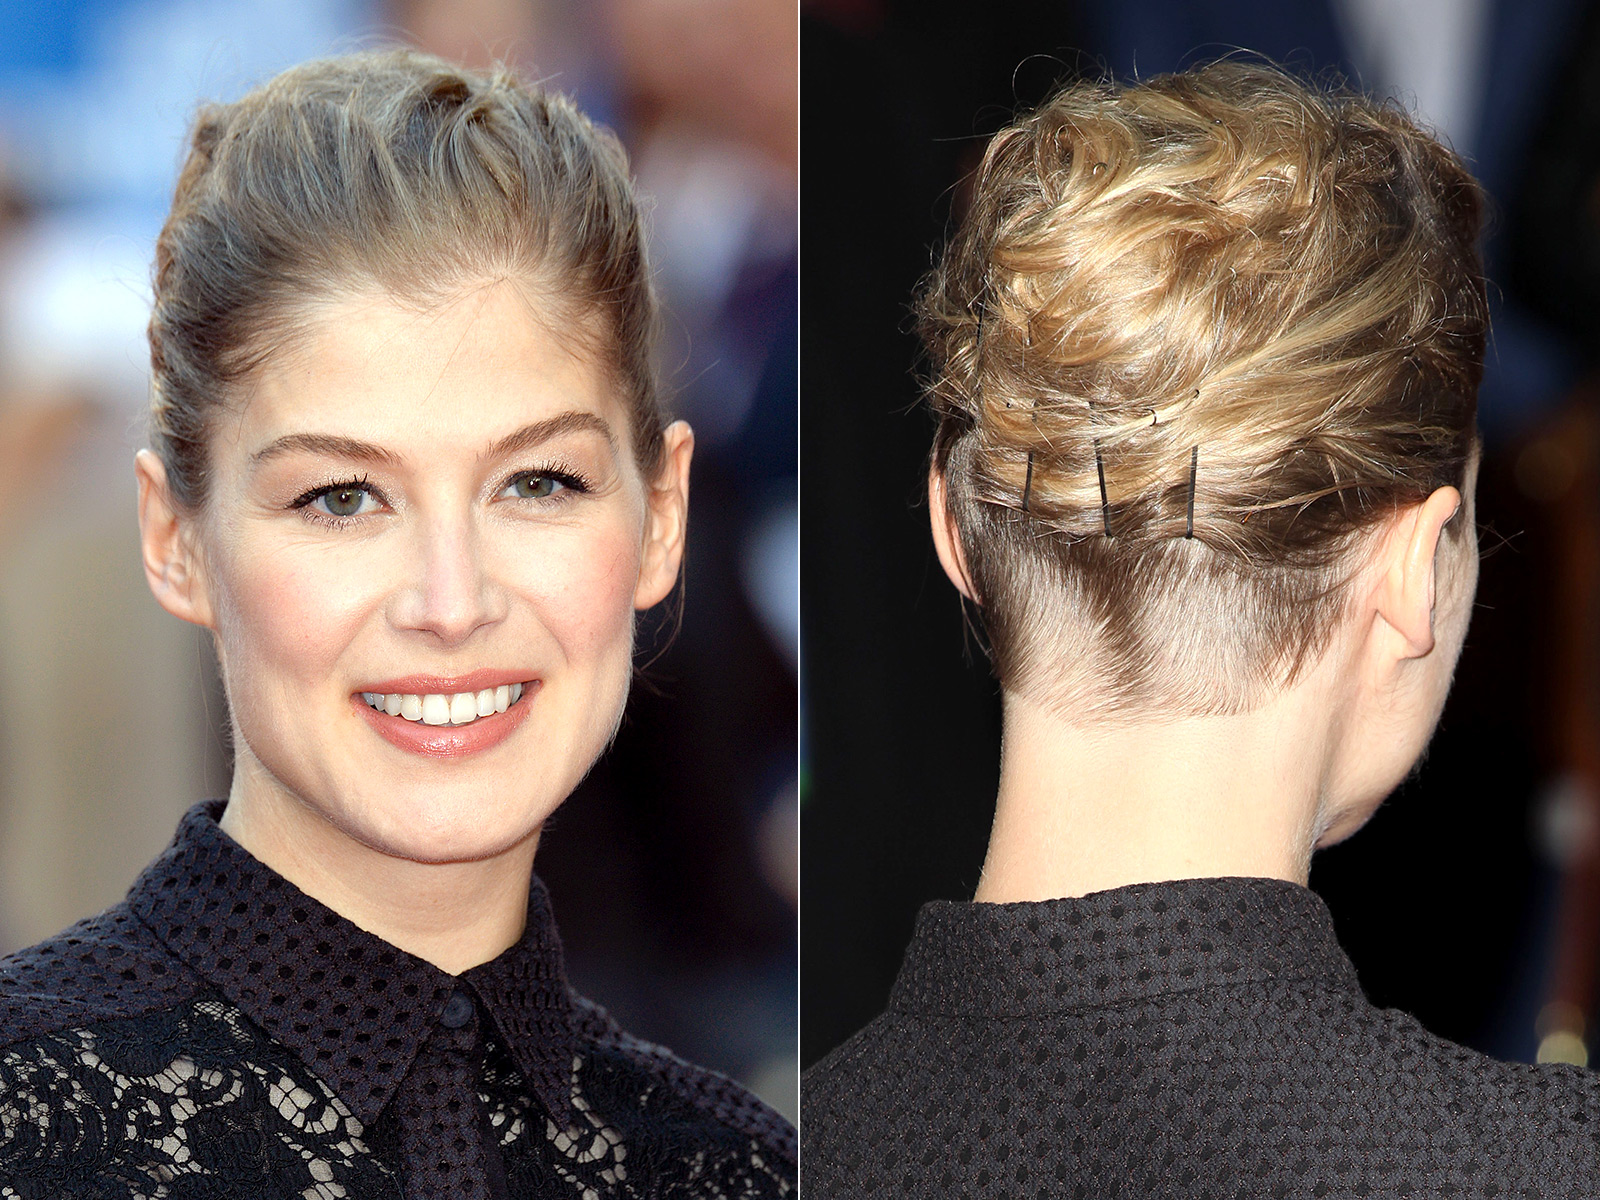 Hair Style Zero: Lady Nape: Rosamund Pike Shaved Nape Undercut Hairstyle